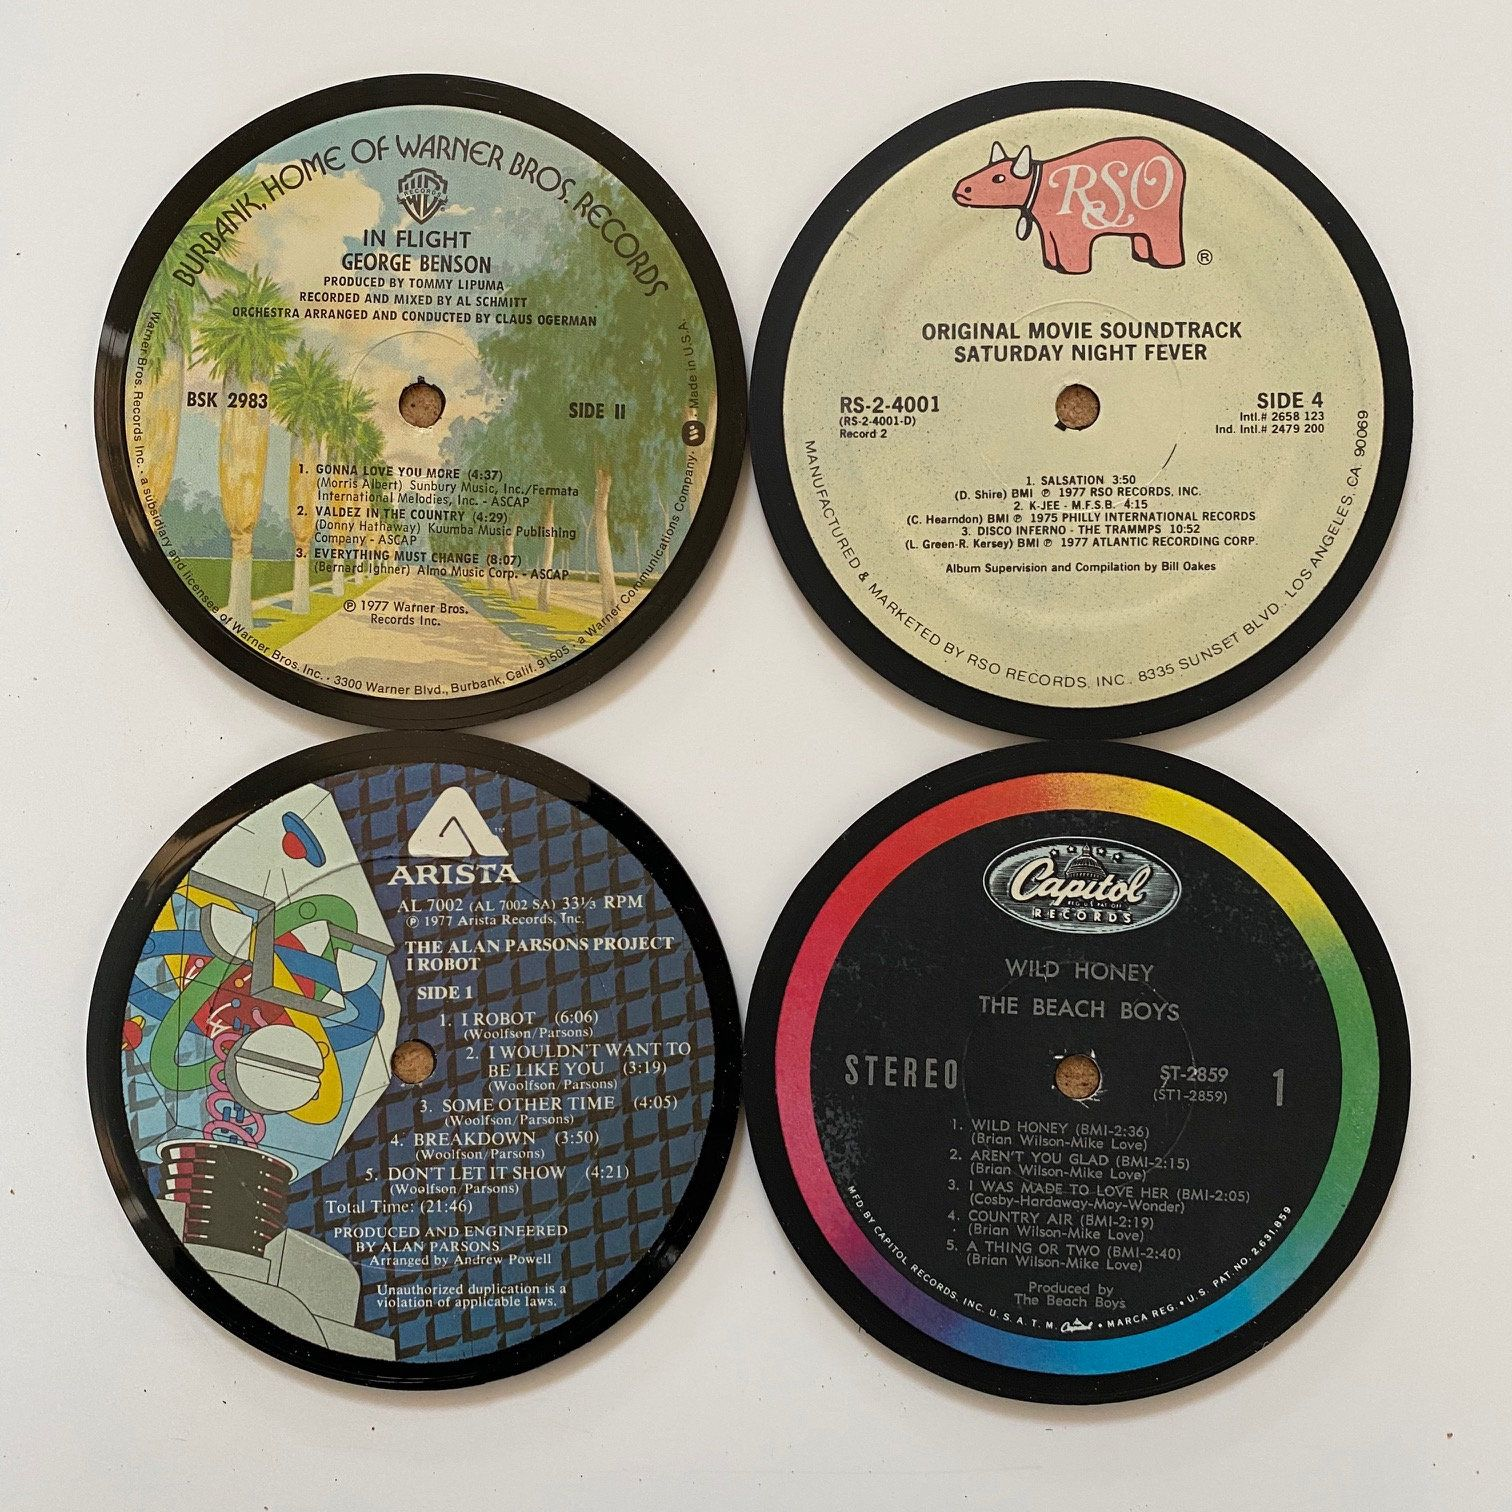 Excited To Share The Latest Addition To My Etsy Shop Vinyl Record Coaster Set 4 Https Etsy Me 2skyruq In 2020 Led Zeppelin Vinyl Vinyl Record Art Vinyl Records